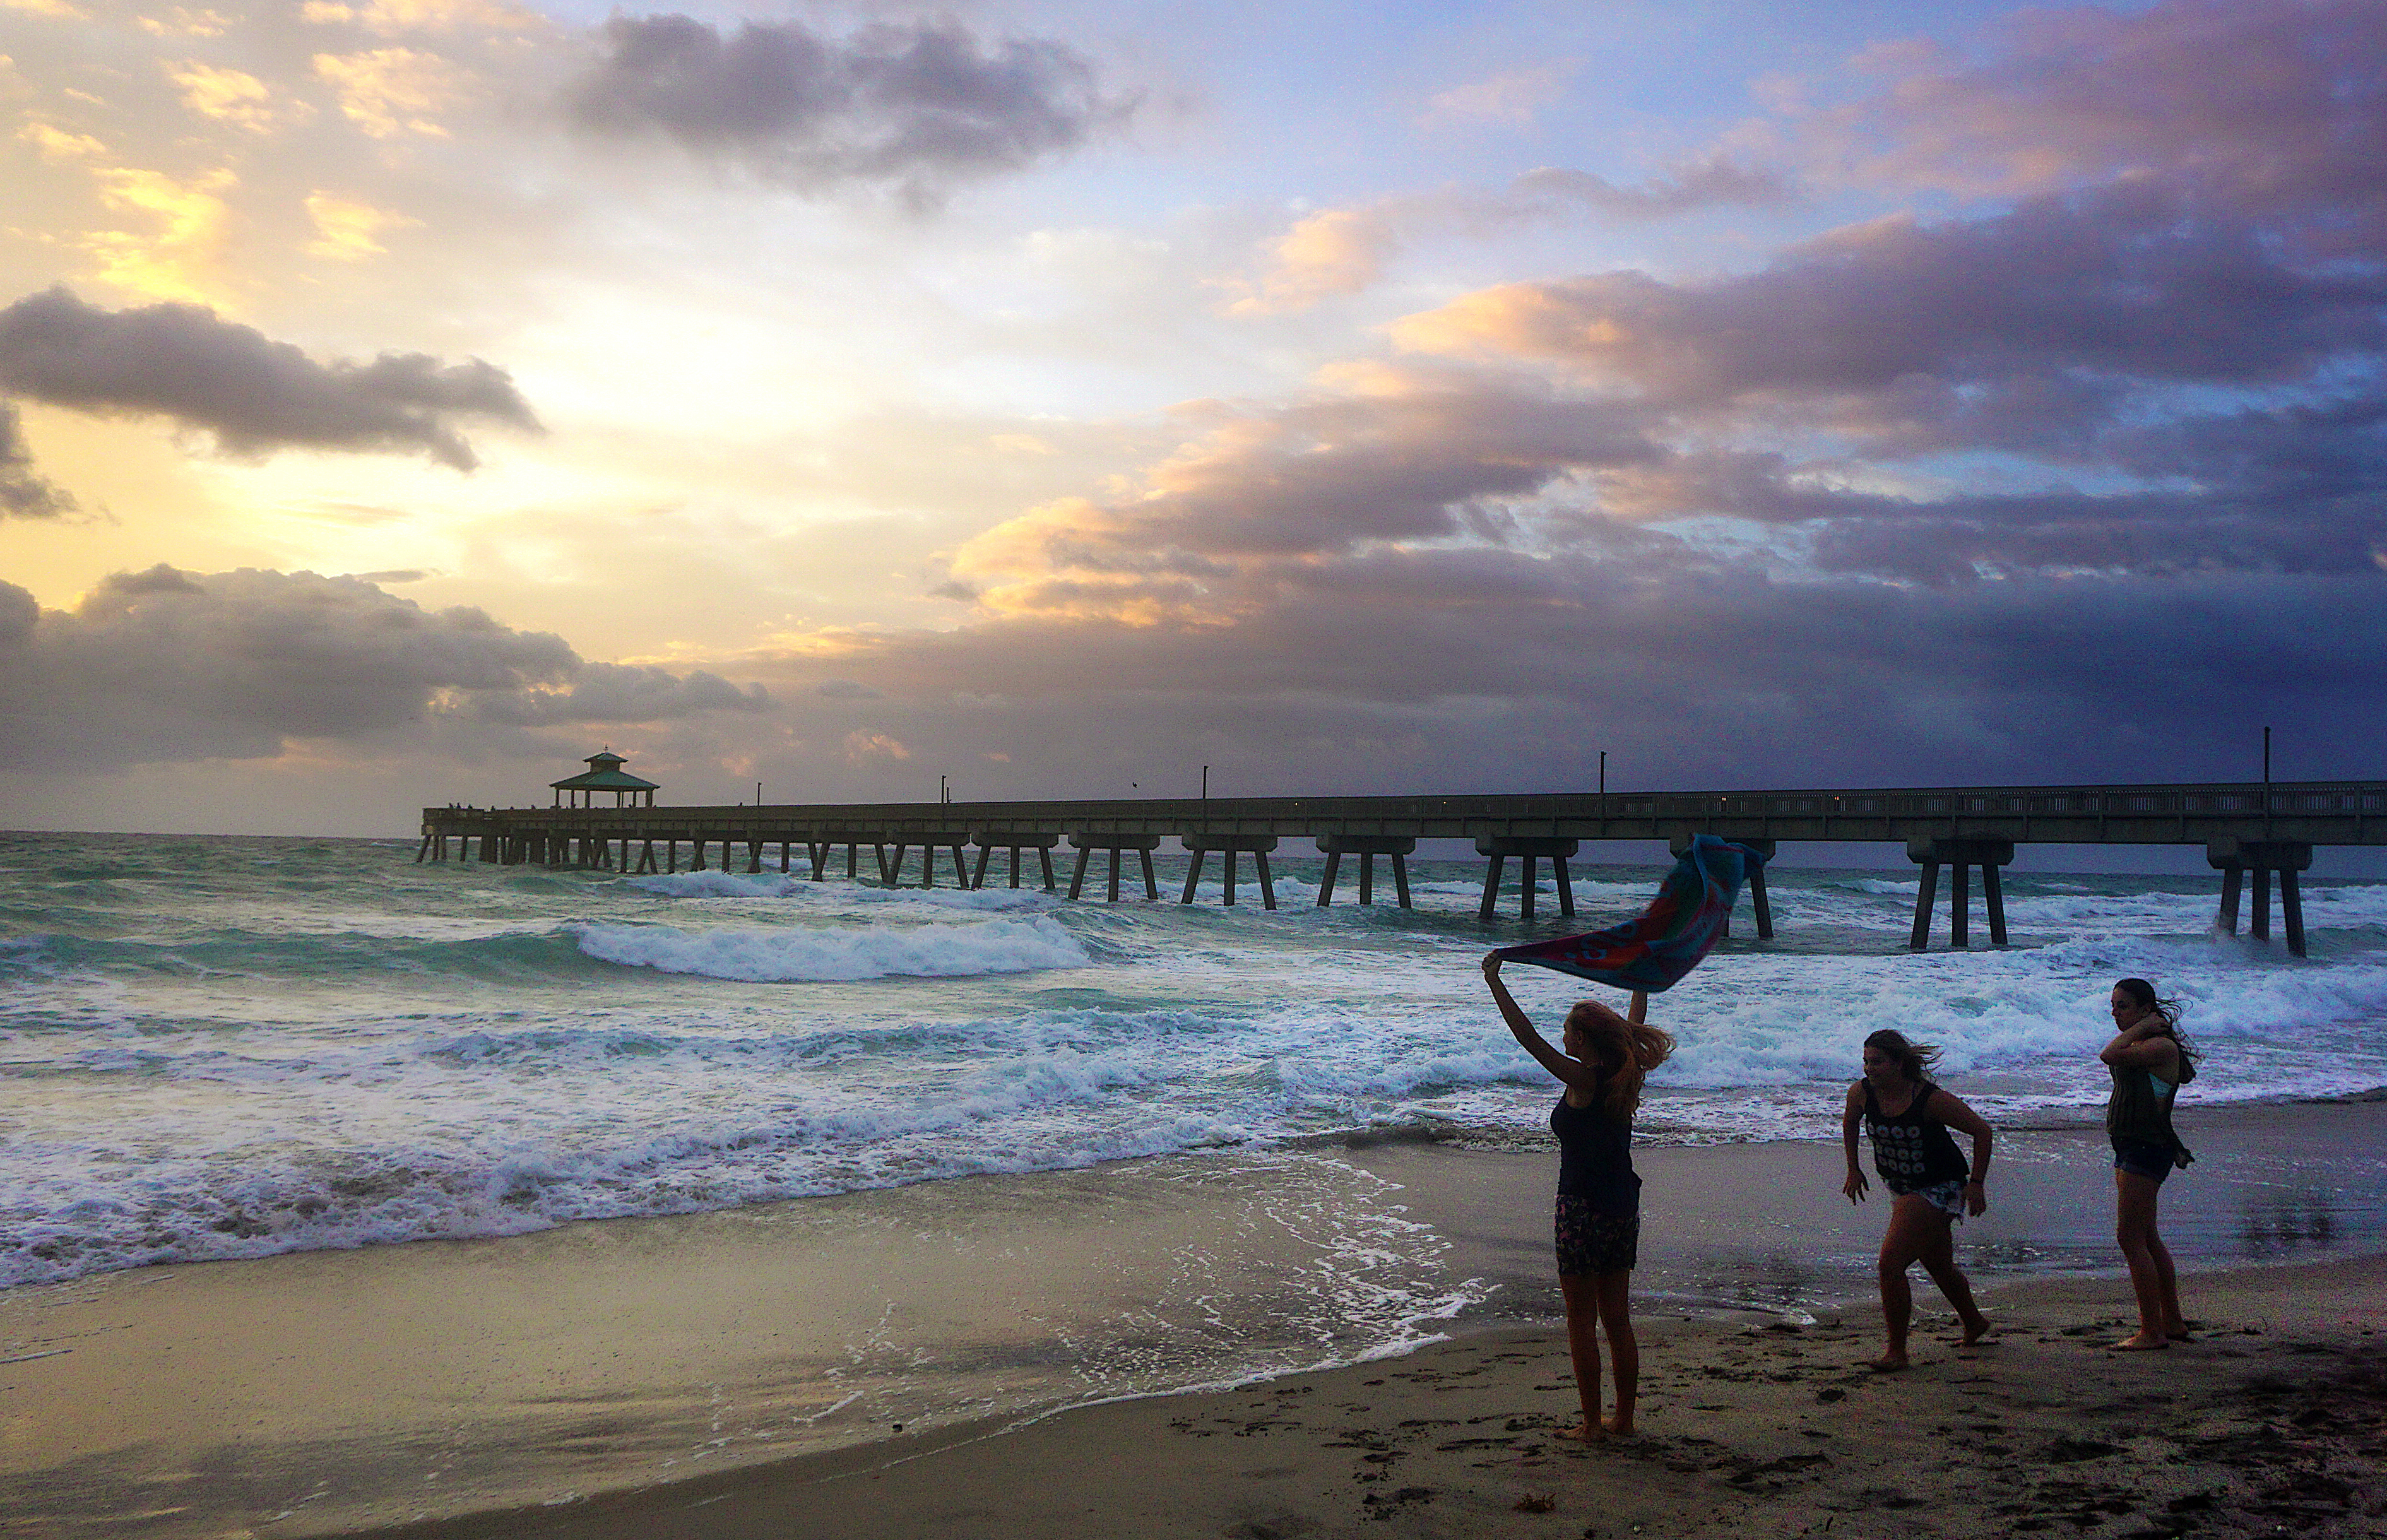 People view a sunrise on a windy day at Deerfield Beach, Fla., on April 18. (Rolando Otero/South Florida Sun-Sentinel via AP)